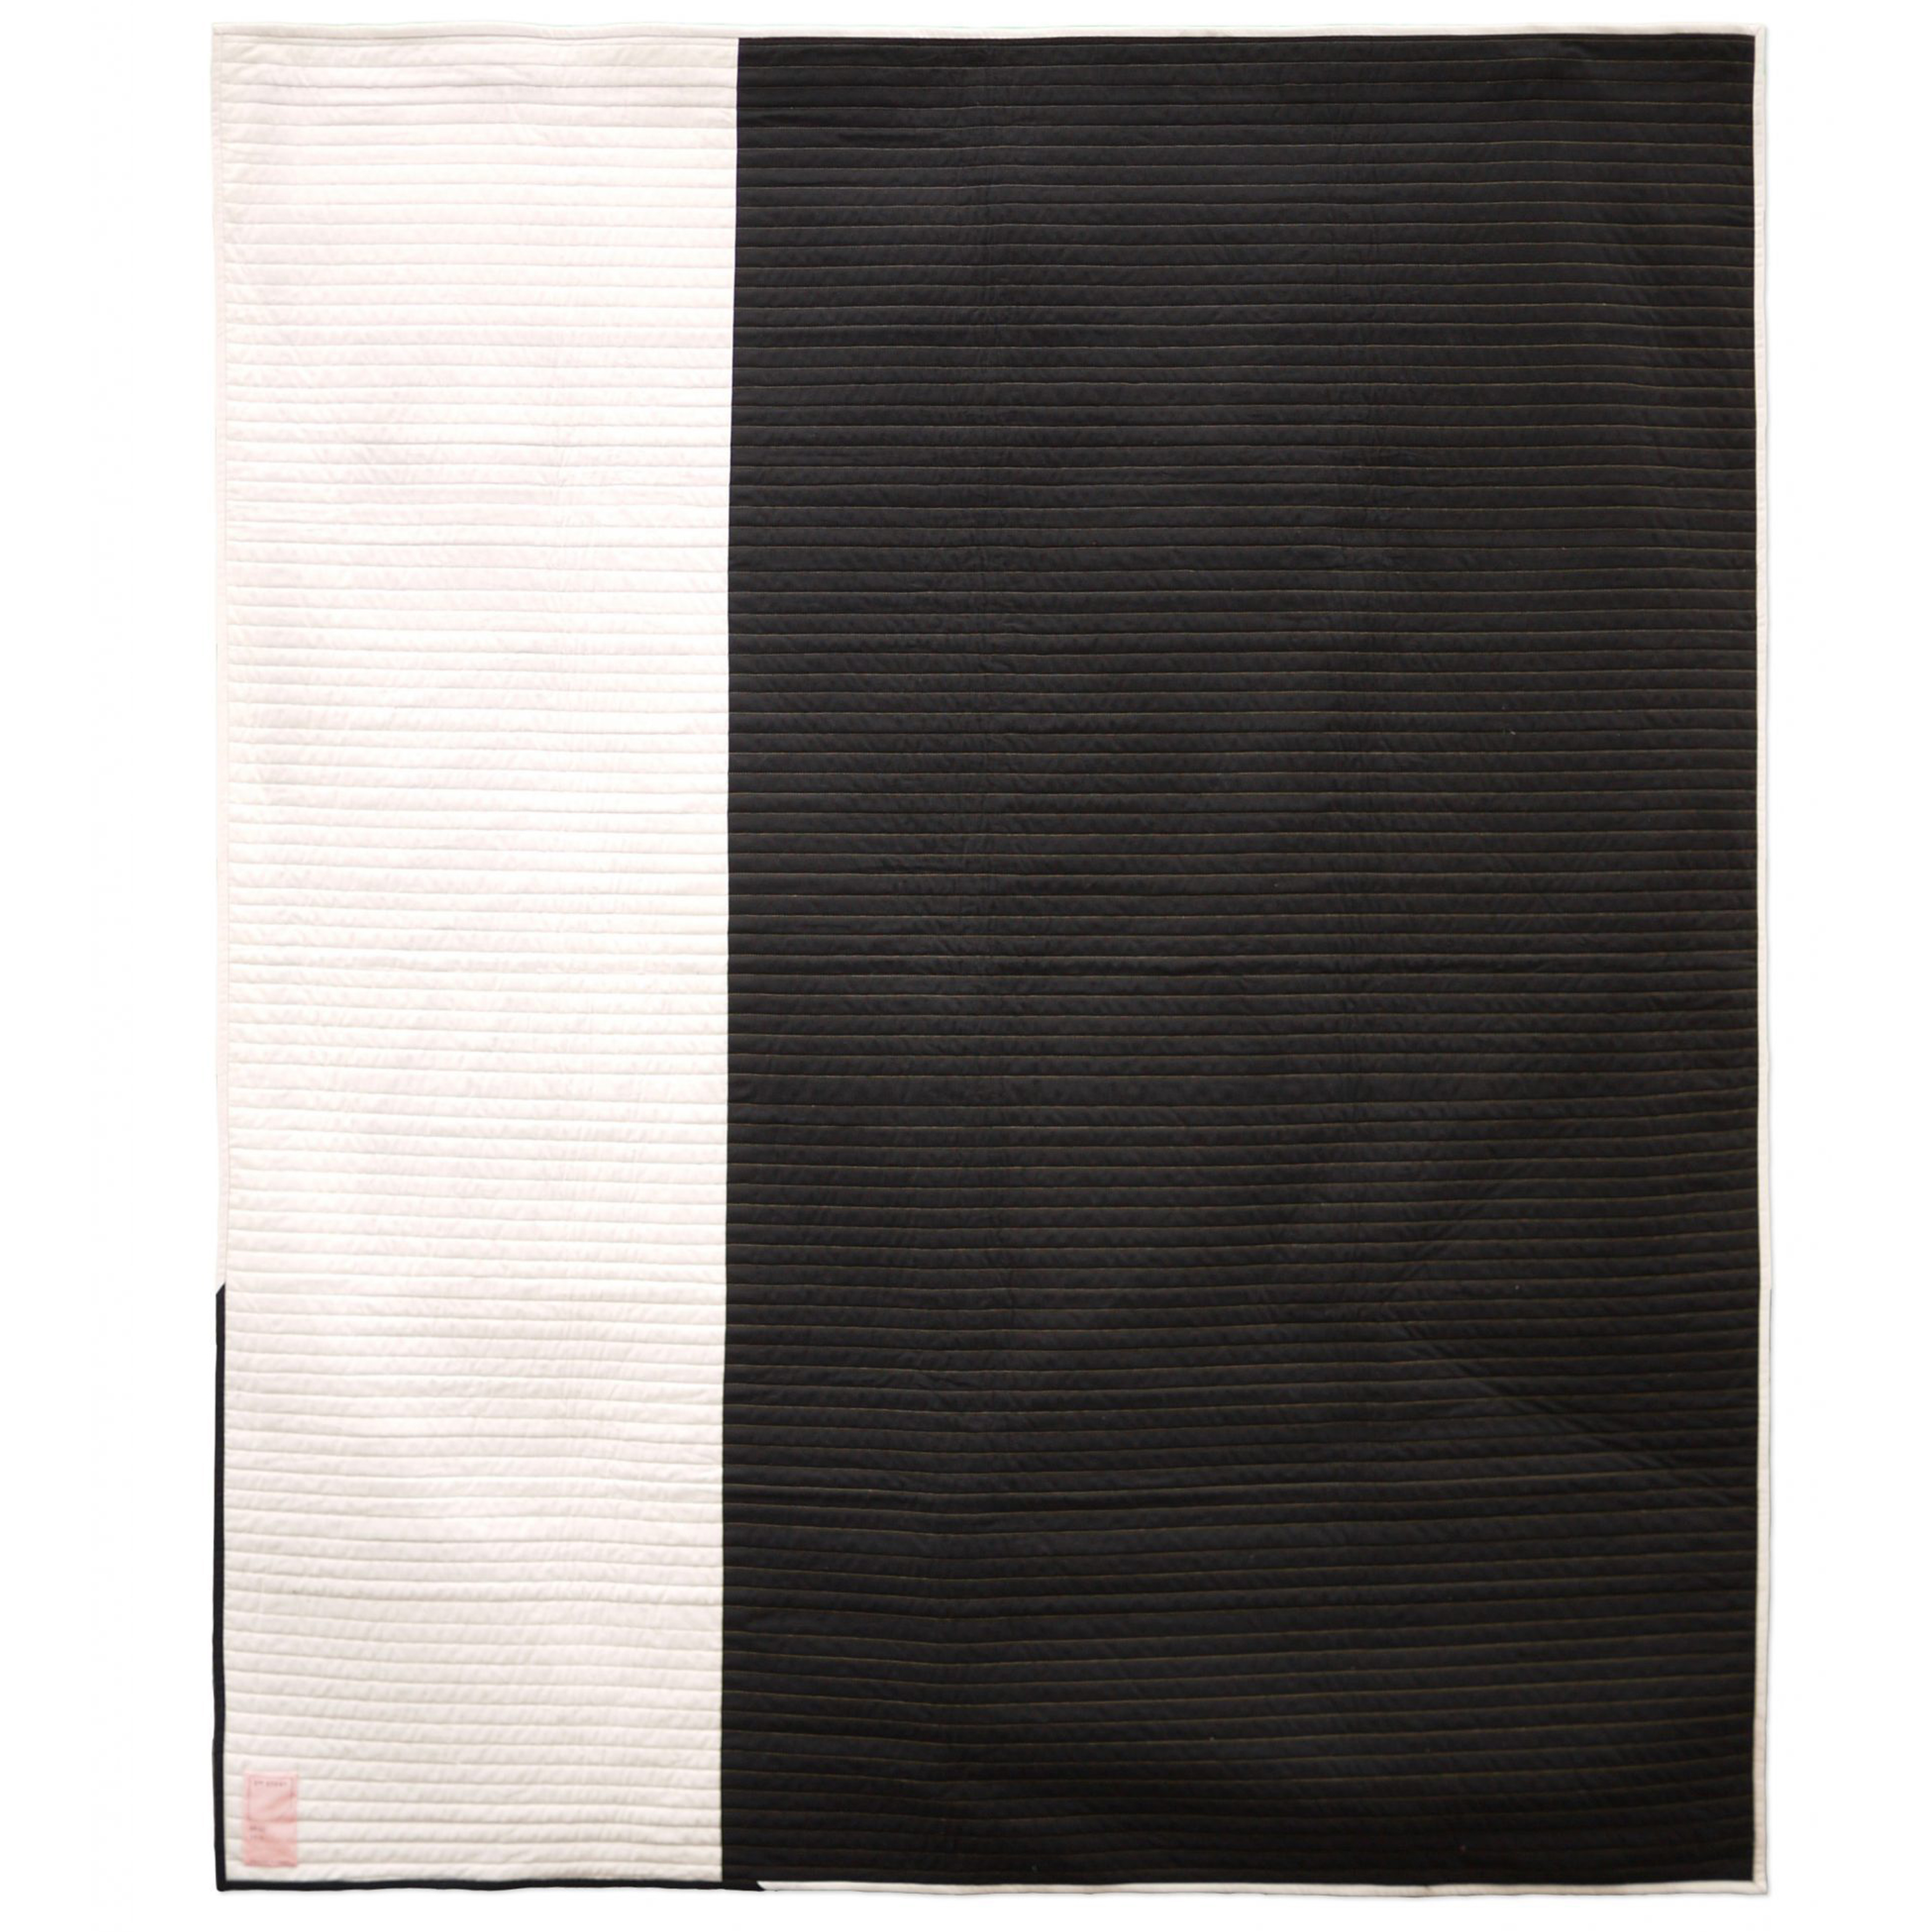 "<b>Inlay, Black - Back</b><br>58"" x 70""<br>Cotton, cotton batting<br>"